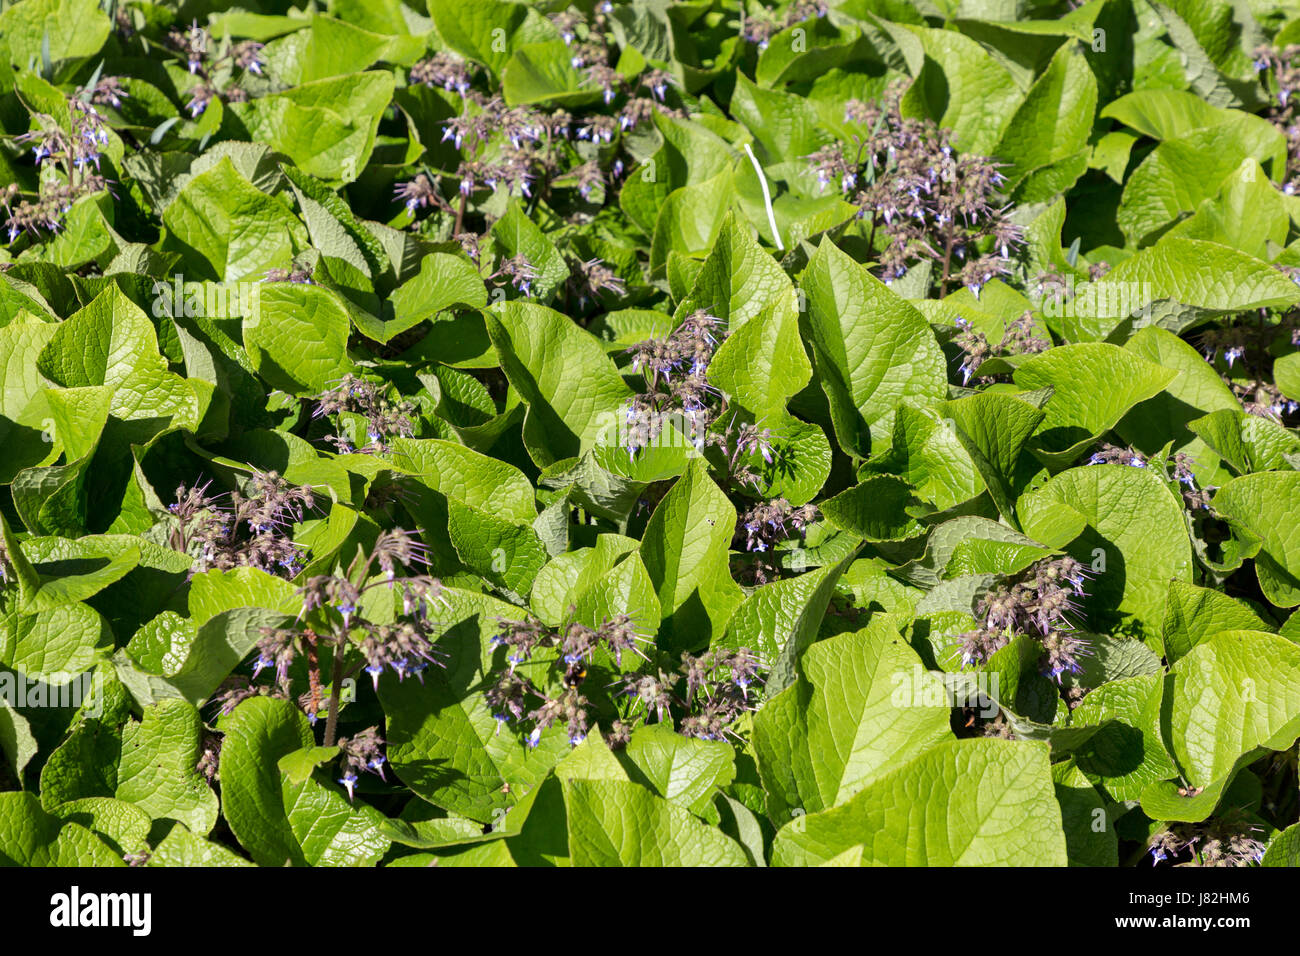 Abraham-Isaac-Jacob, (Trachy stemon orientalis), perrenial plant, Weir Garden, Swainshill, Hereford, England, UK - Stock Image